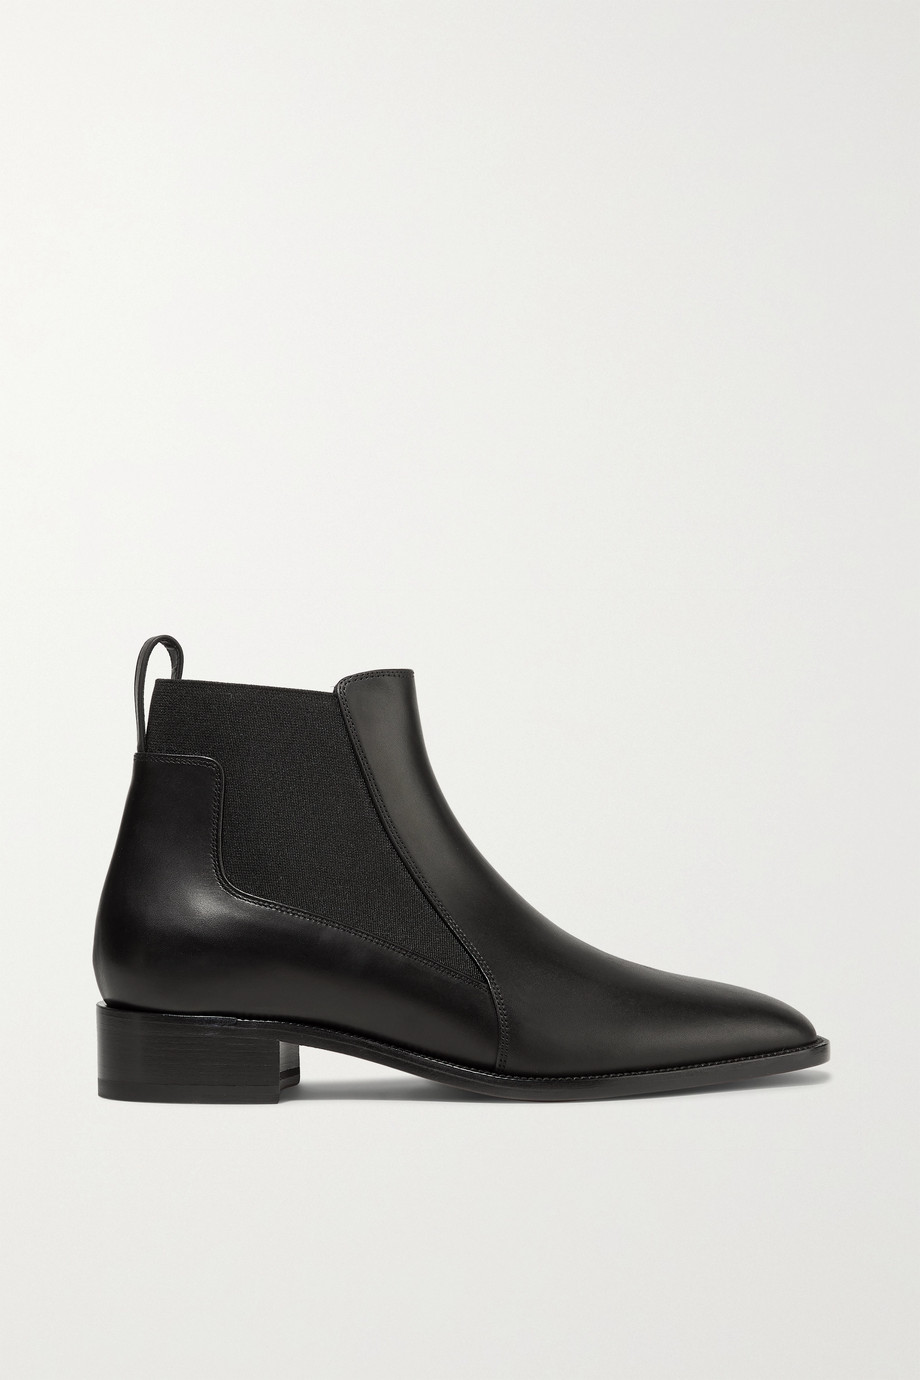 Christian Louboutin Marnmada leather Chelsea boots